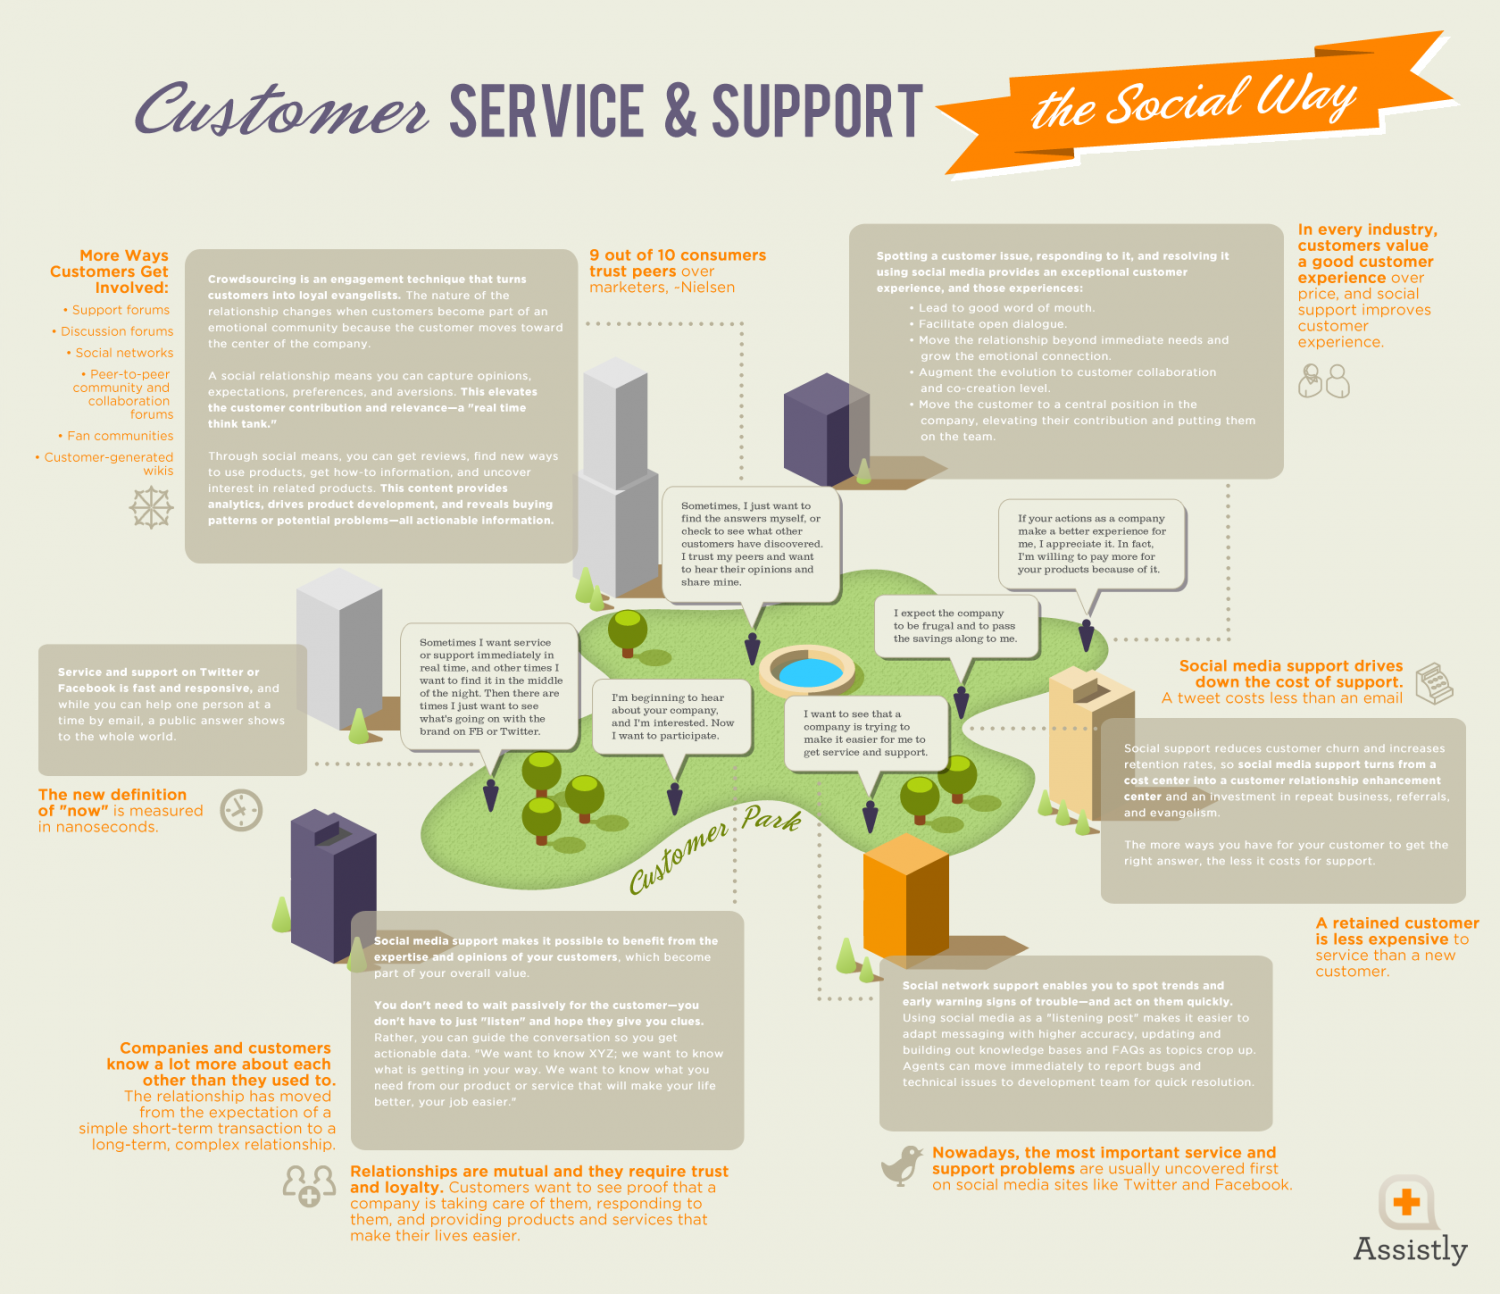 Customer Service and Support, The Social Way Infographic